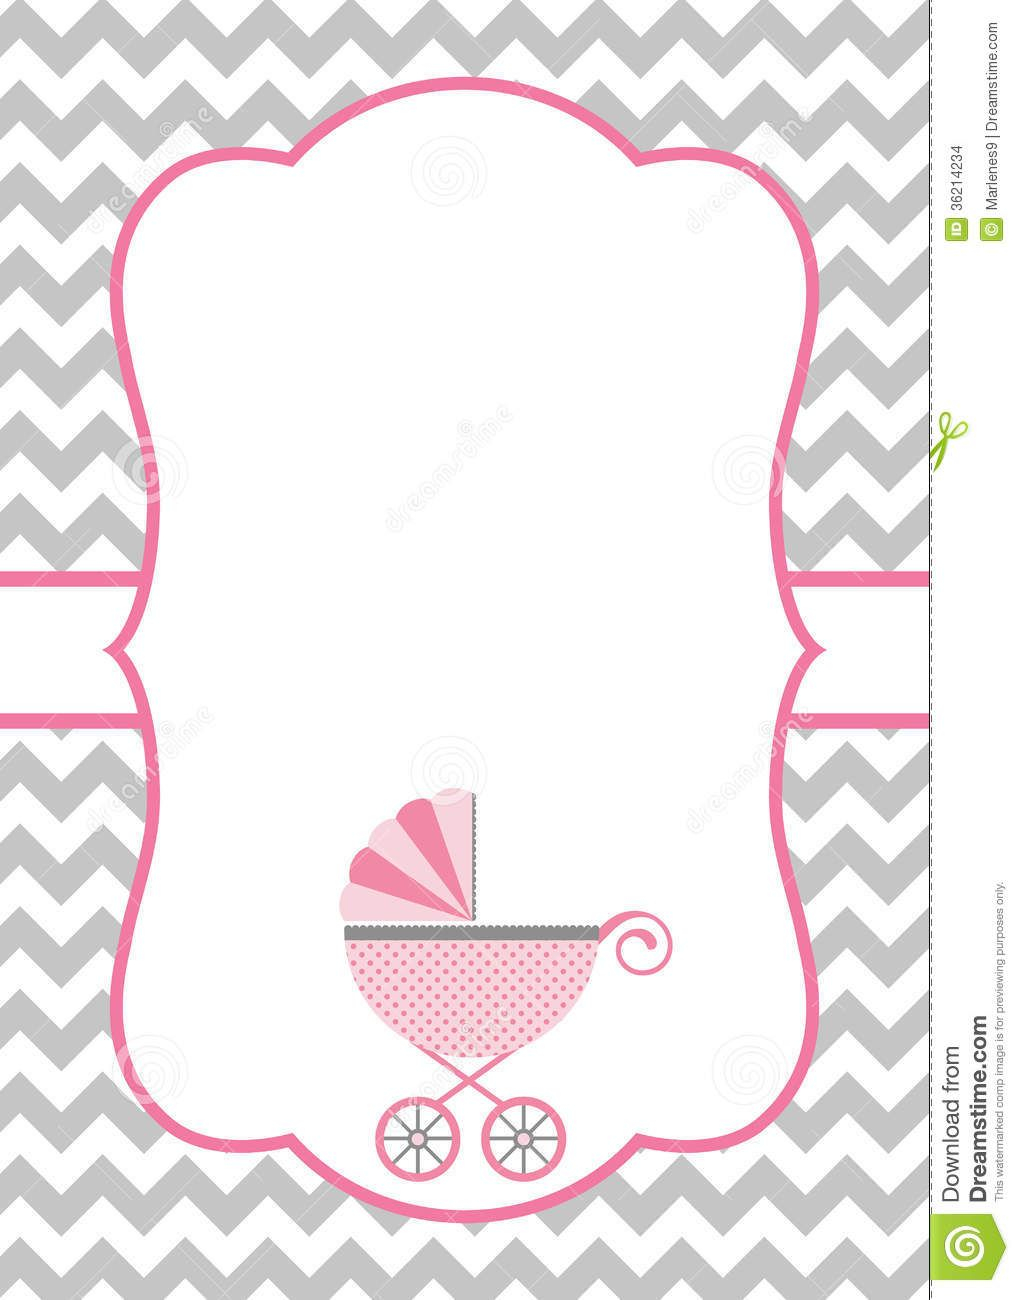 Inspirational Baby Girl Border - Google'da Ara | Labels | Pinterest | Babies And Cards within Unique Baby Shower Borders